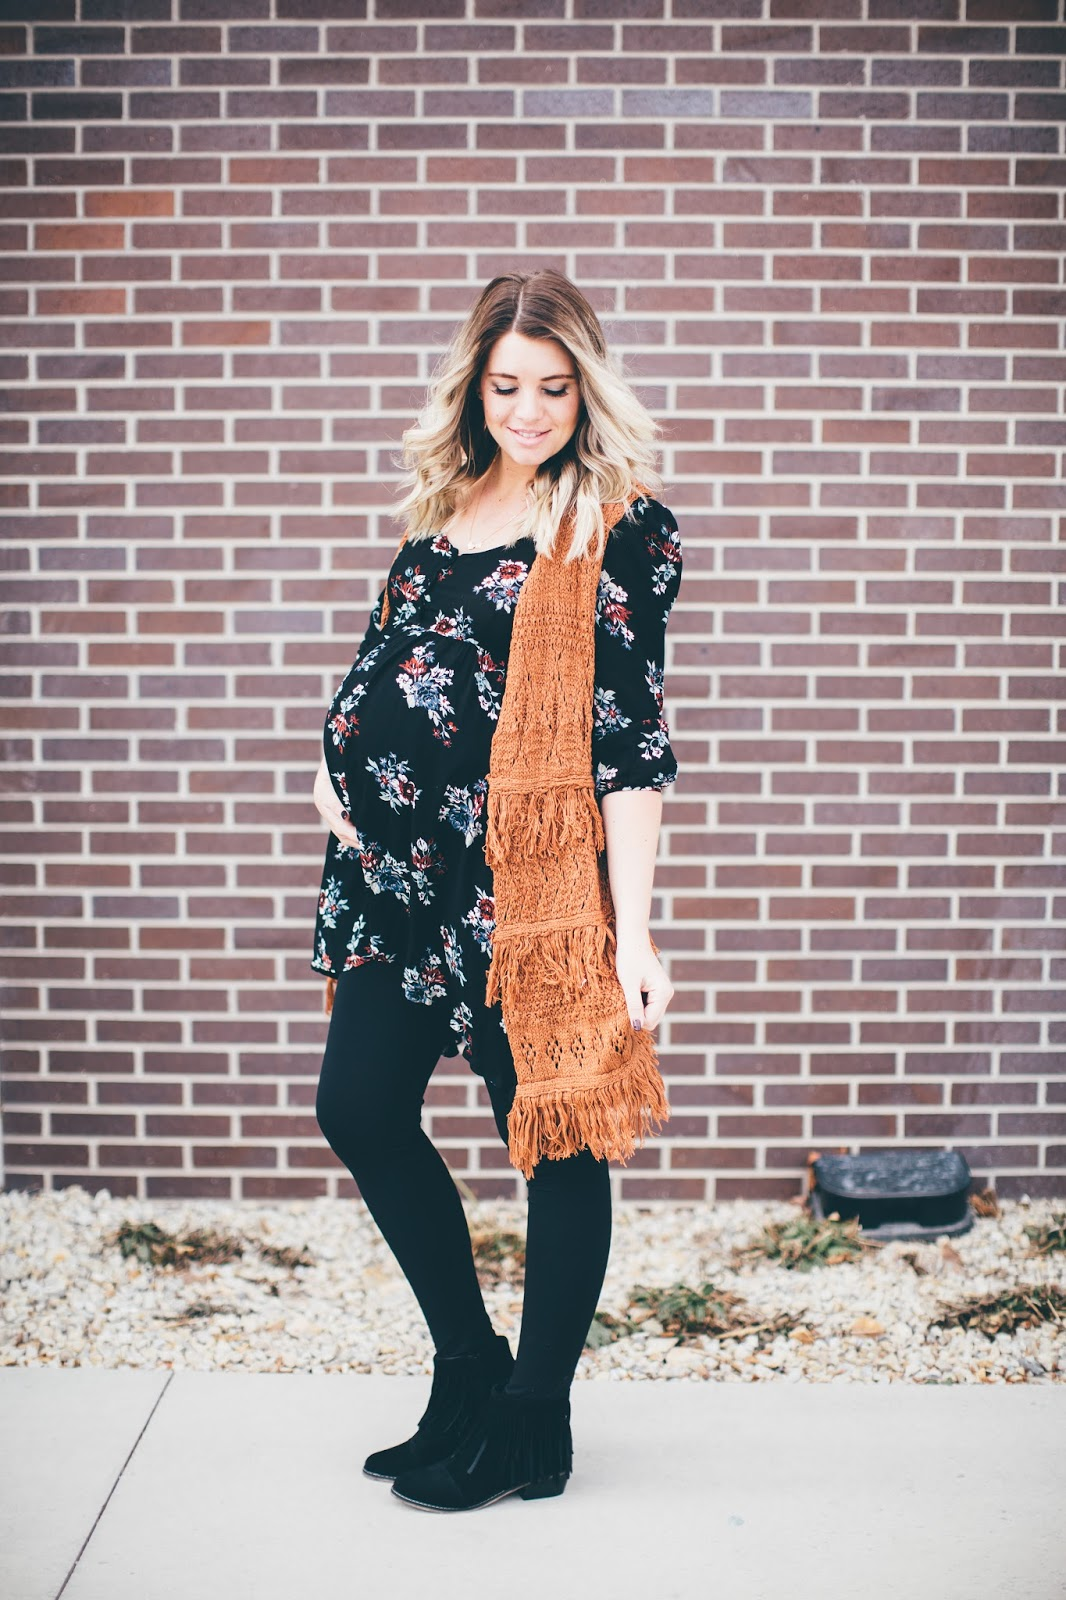 Paige Avenue, Floral Tunic, Utah Fashion Blogger, Maternity Outfit, Pregnant Outfit